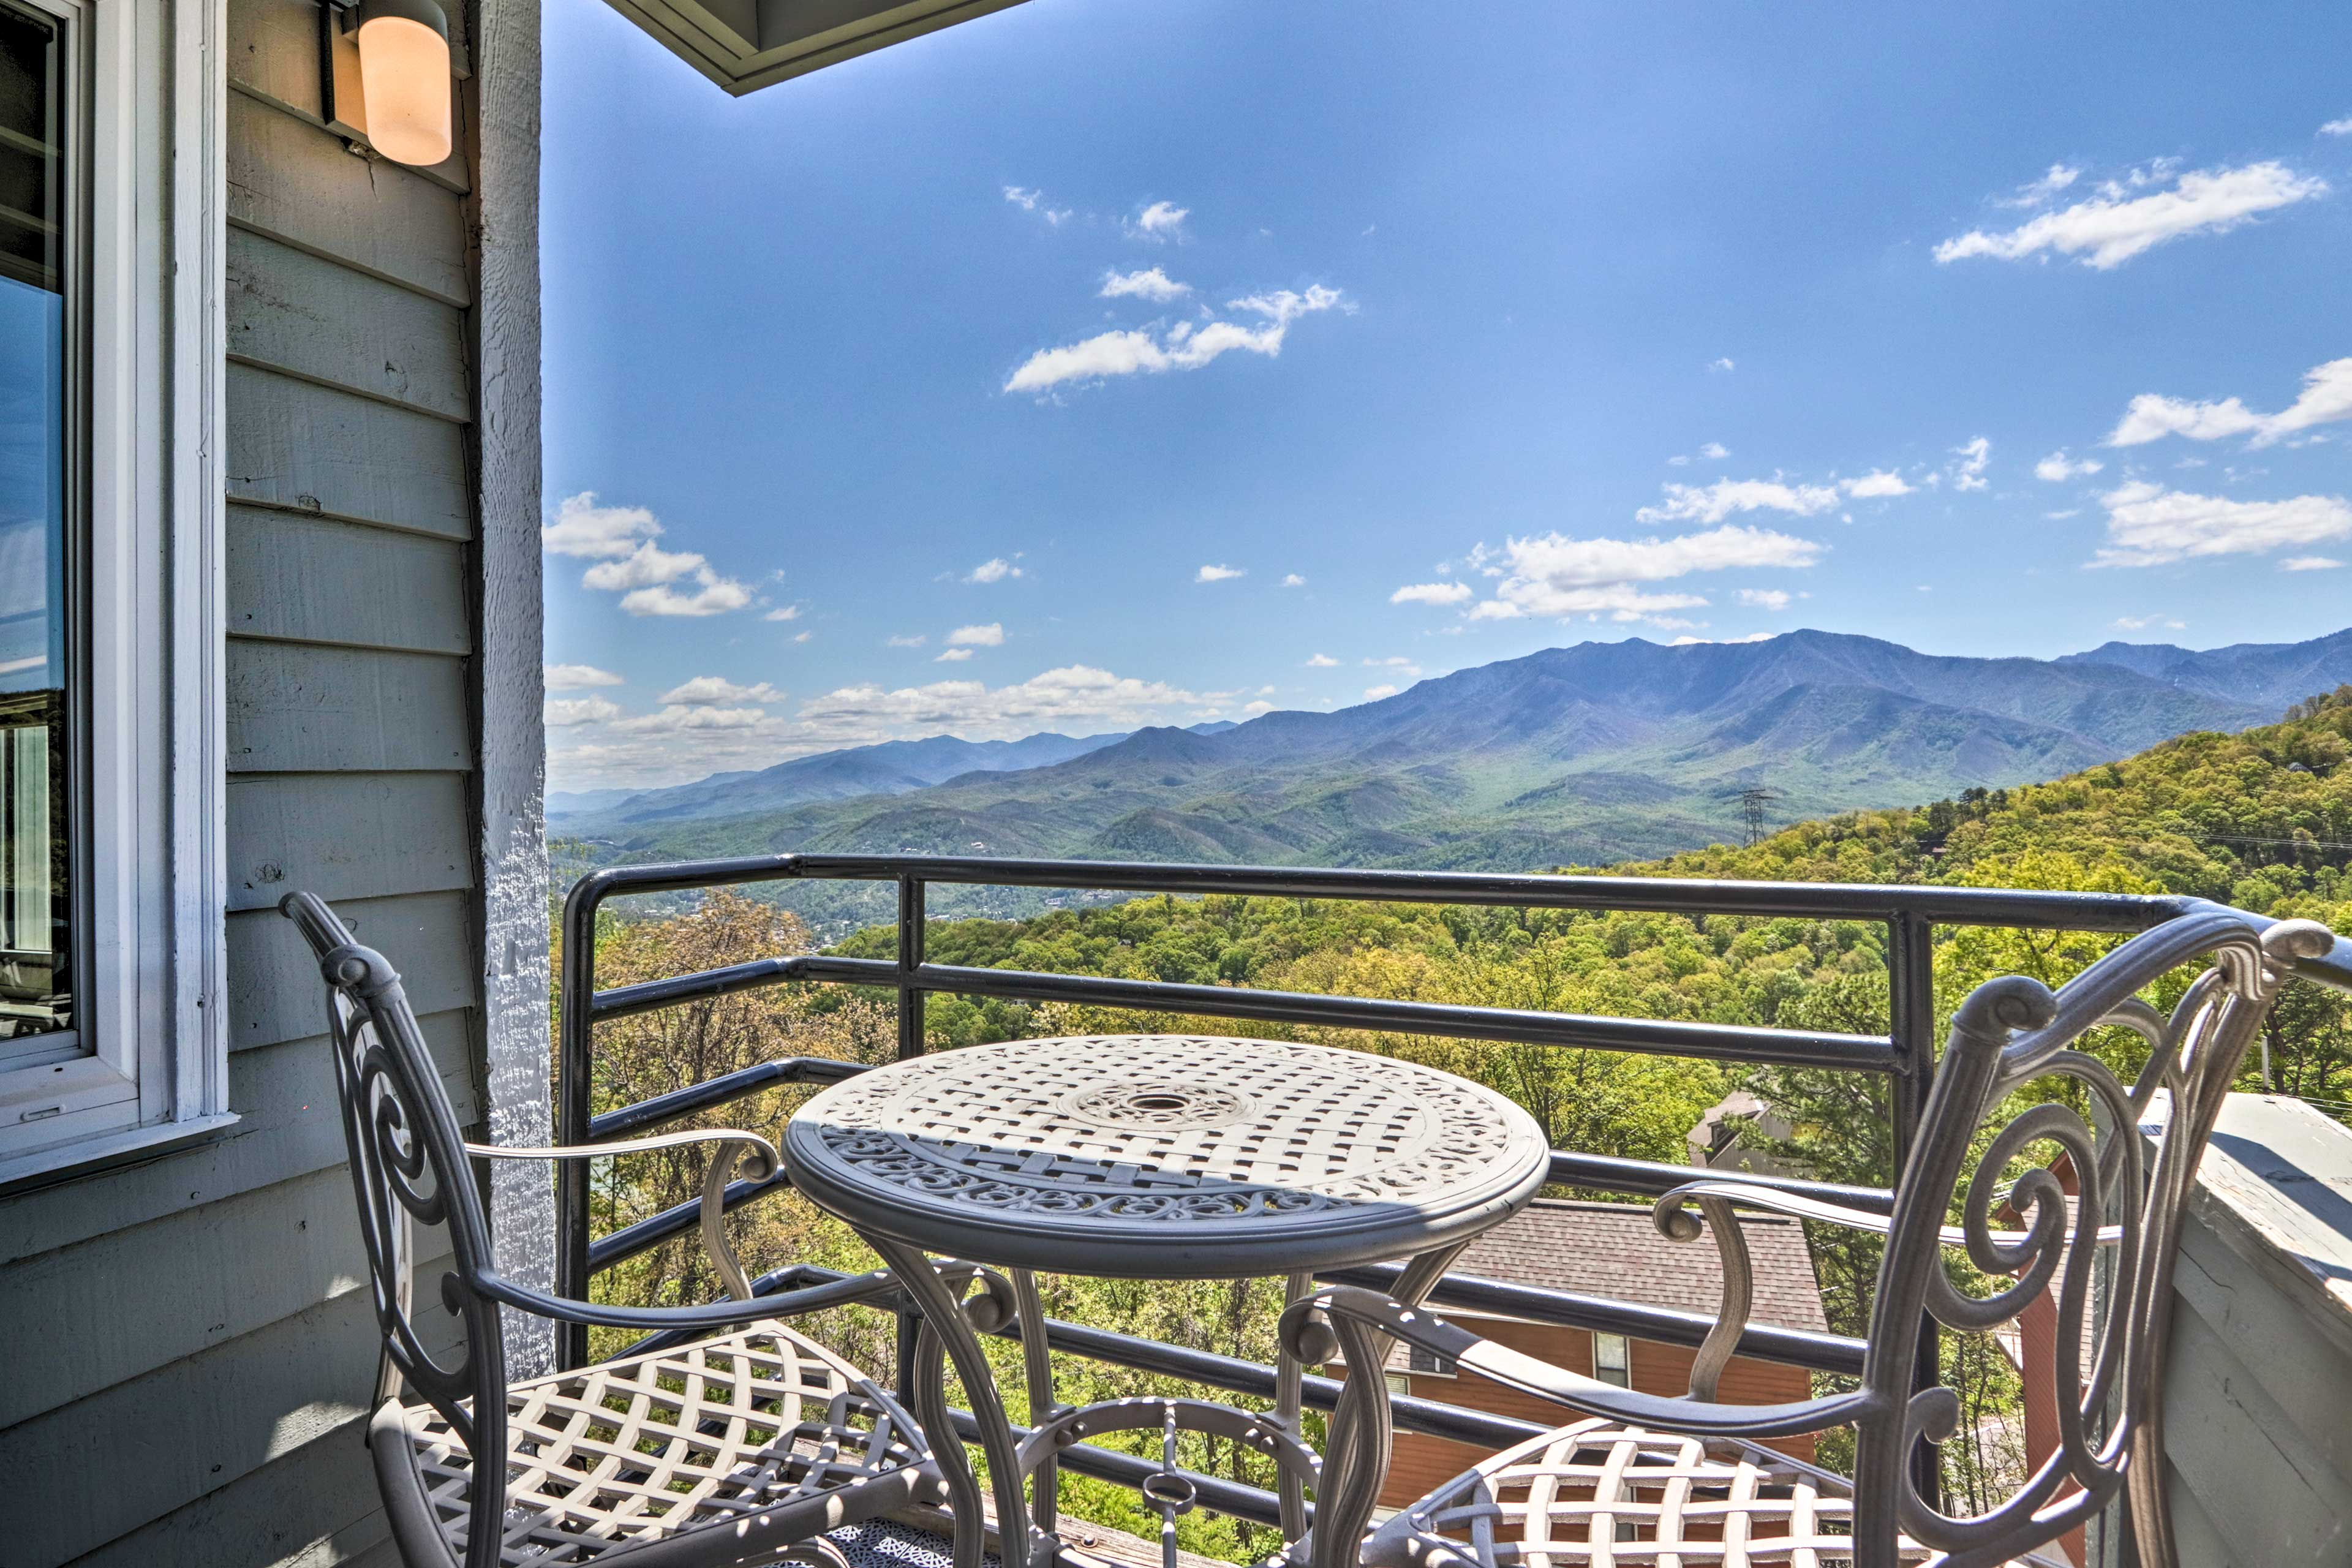 Enjoy a laid-back retreat in Gatlinburg at this gorgeous vacation rental!